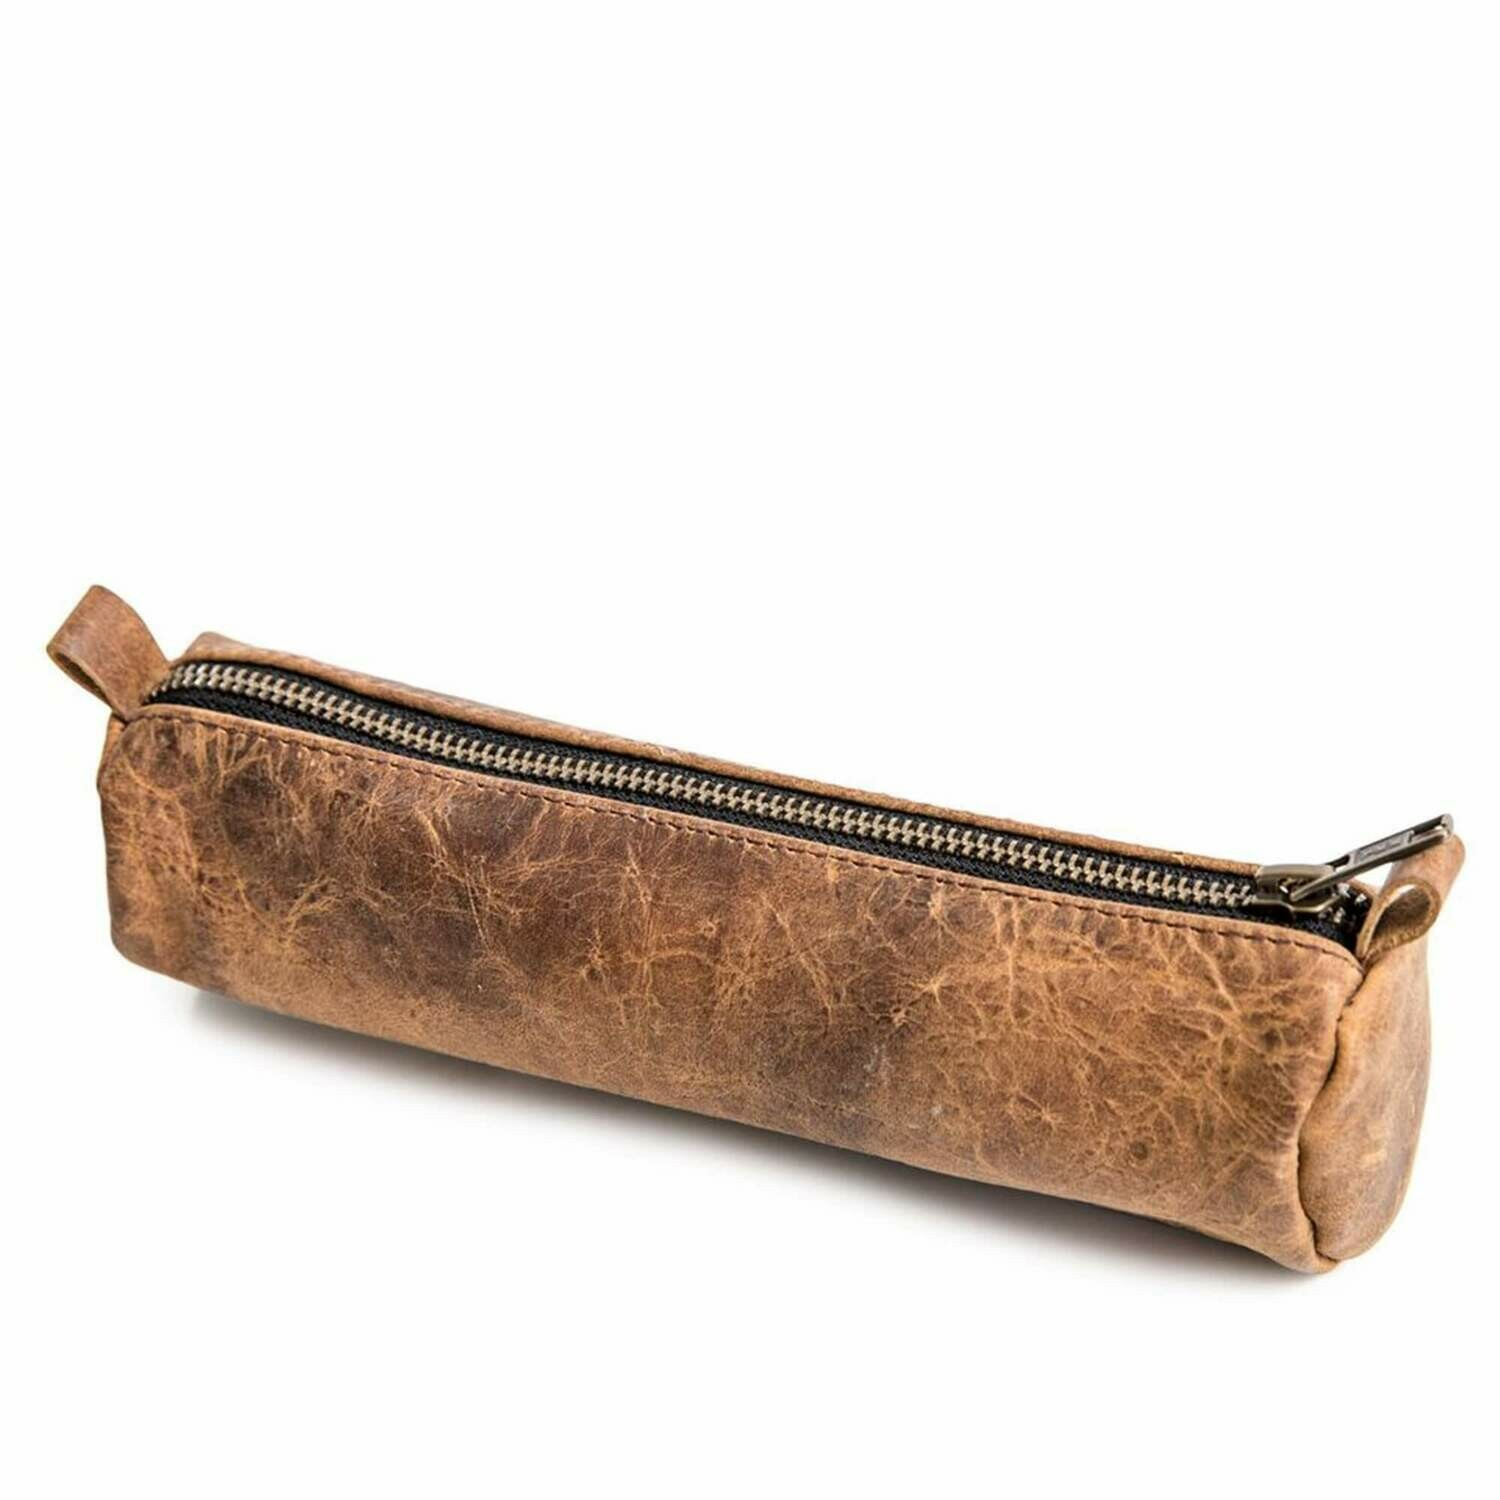 8x3 Leather Pencil Case /CA121